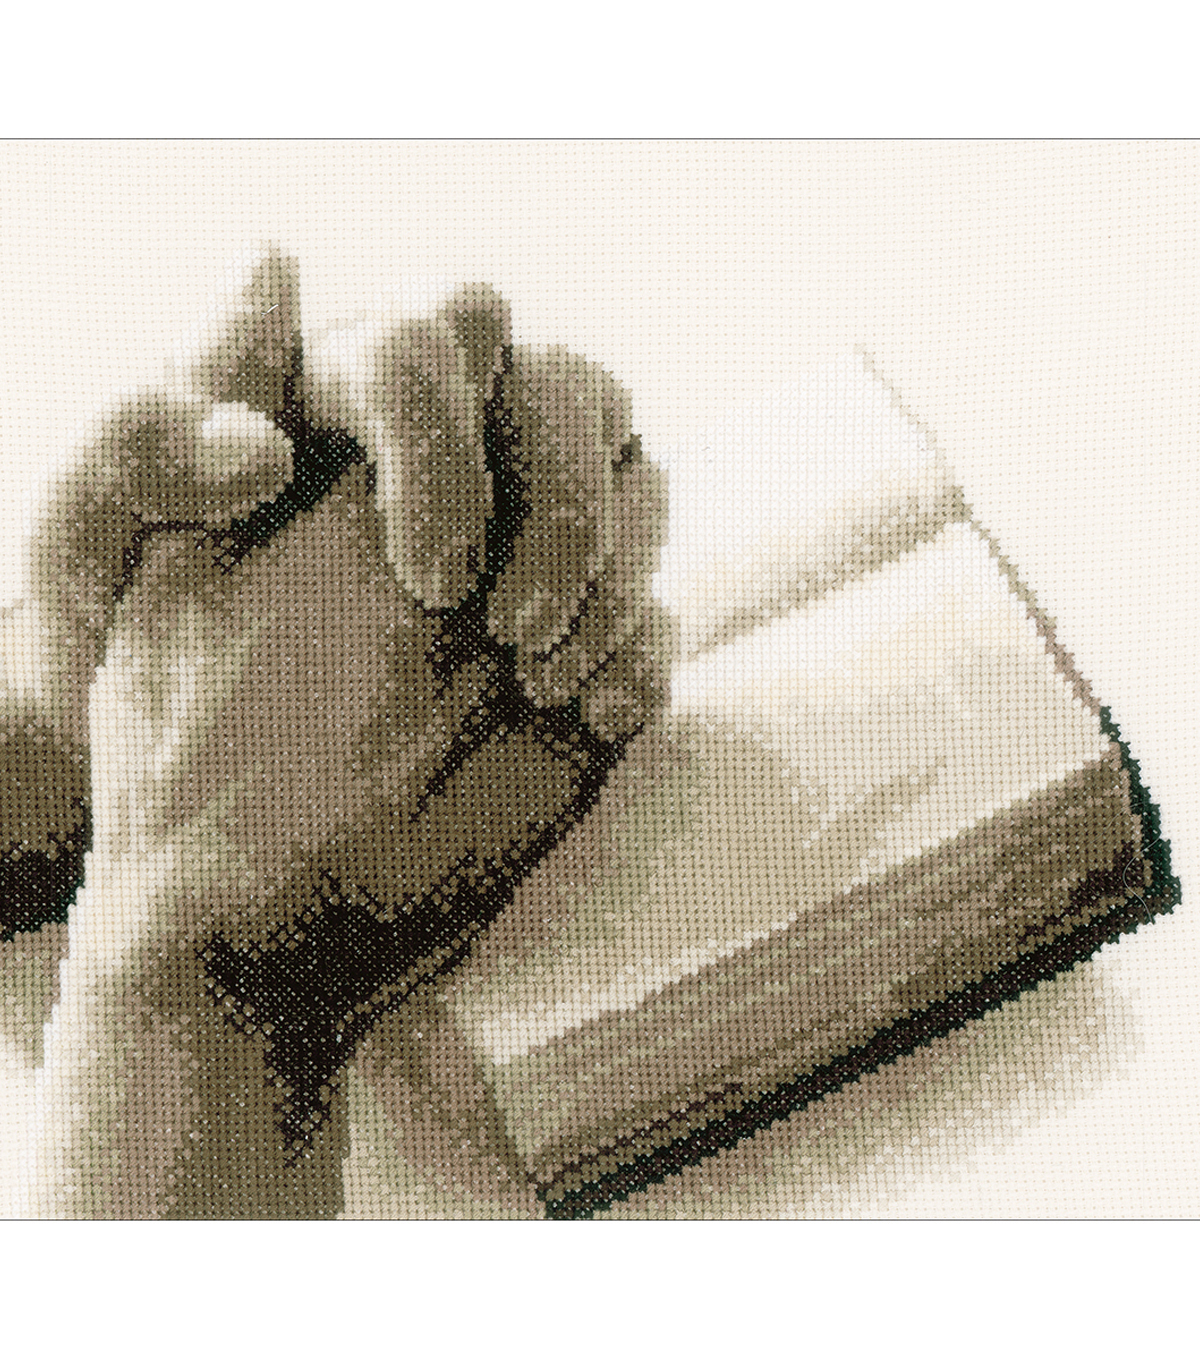 Vervaco 10.8\u0027\u0027x8.8\u0027\u0027 Aida Counted Cross Stitch Kit-Praying Hands